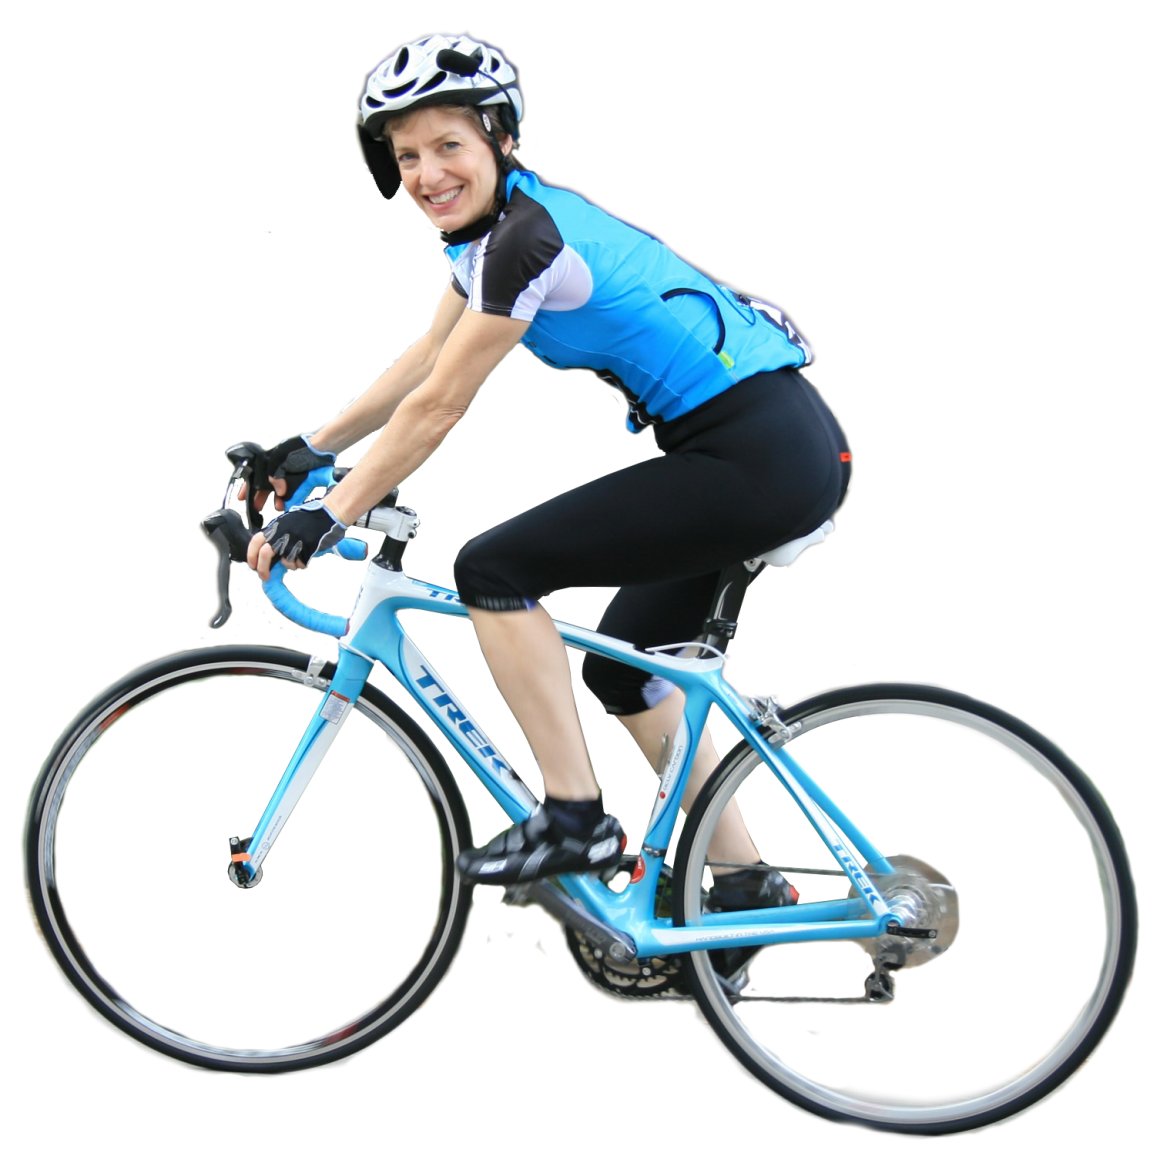 Bike Rider Png, png collections at sccpre.cat.